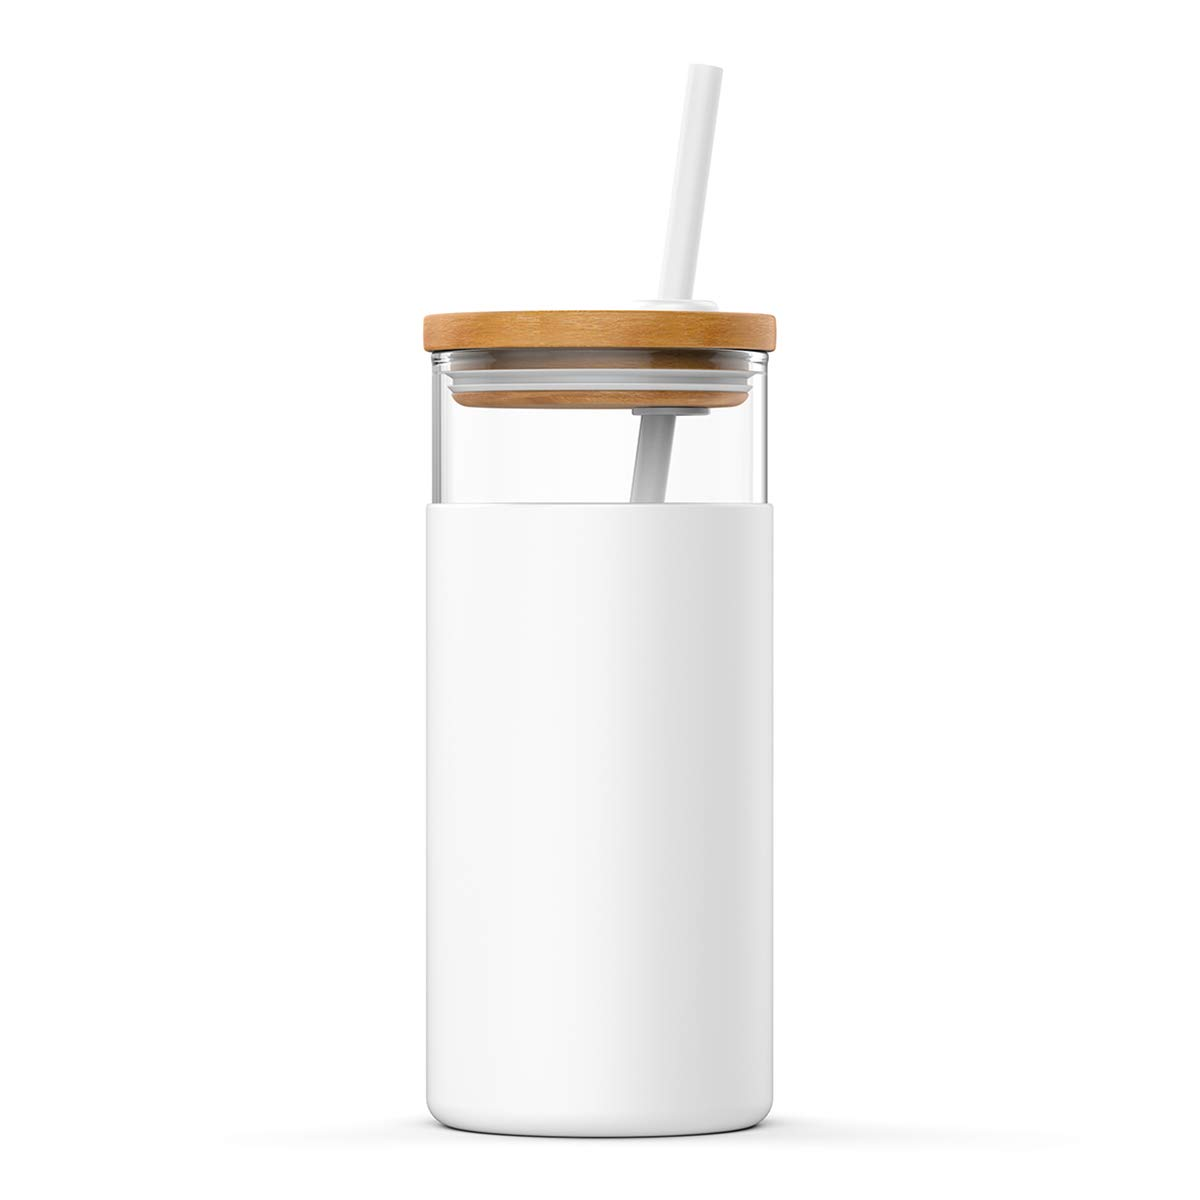 Tronco 20oz Glass Tumbler Straw Silicone Protective Sleeve Bamboo Lid - BPA Free(White